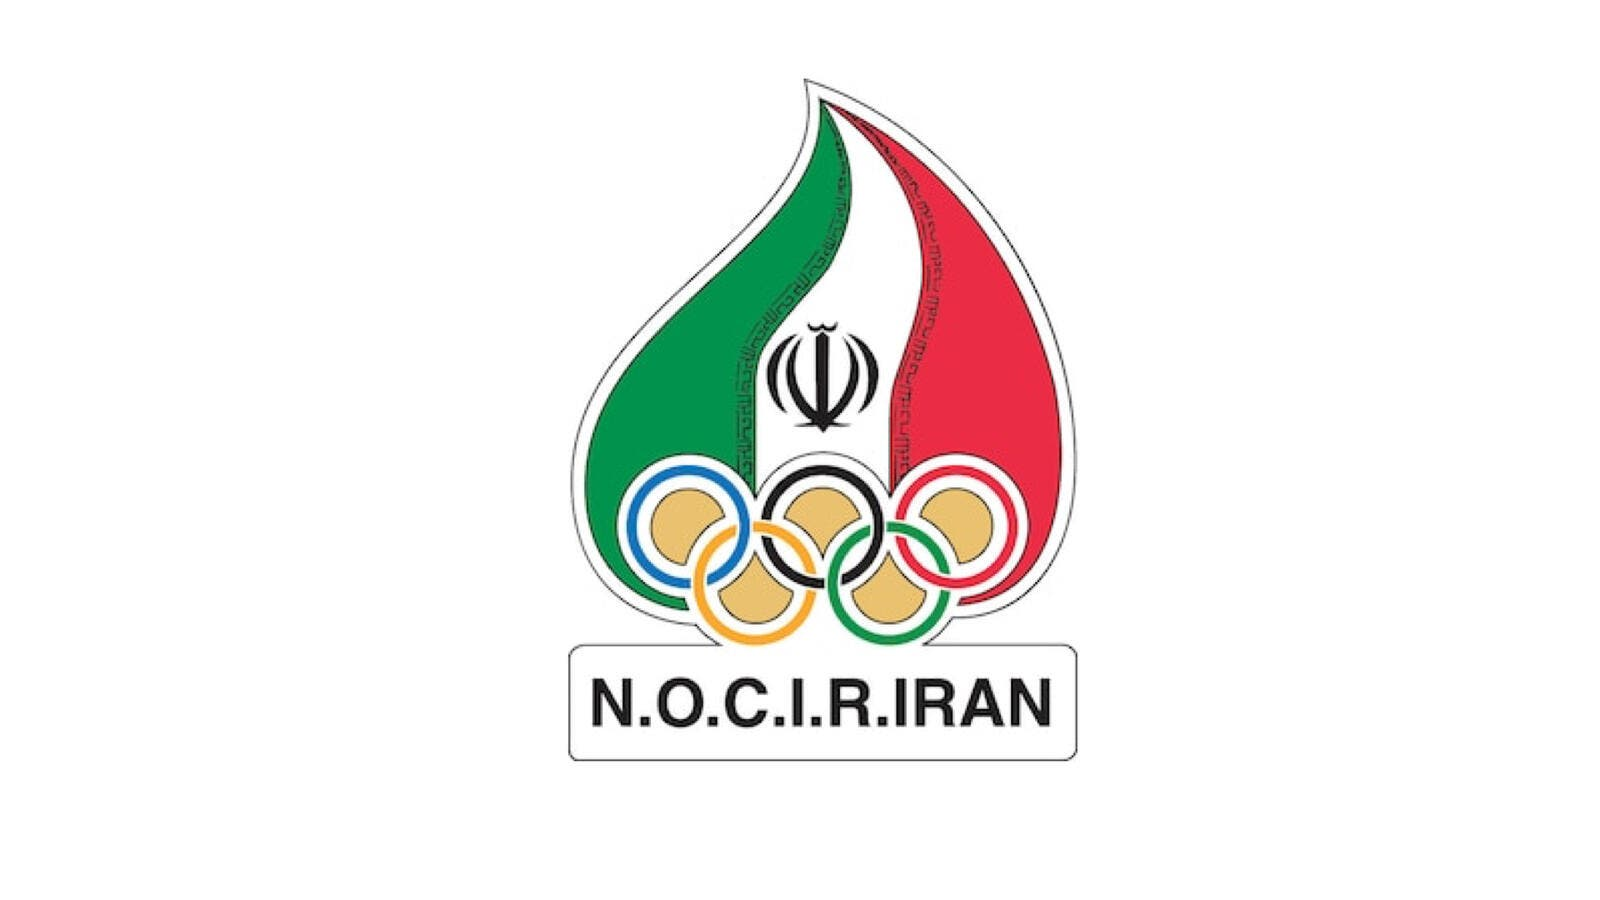 Iran's national Olympic committee logo